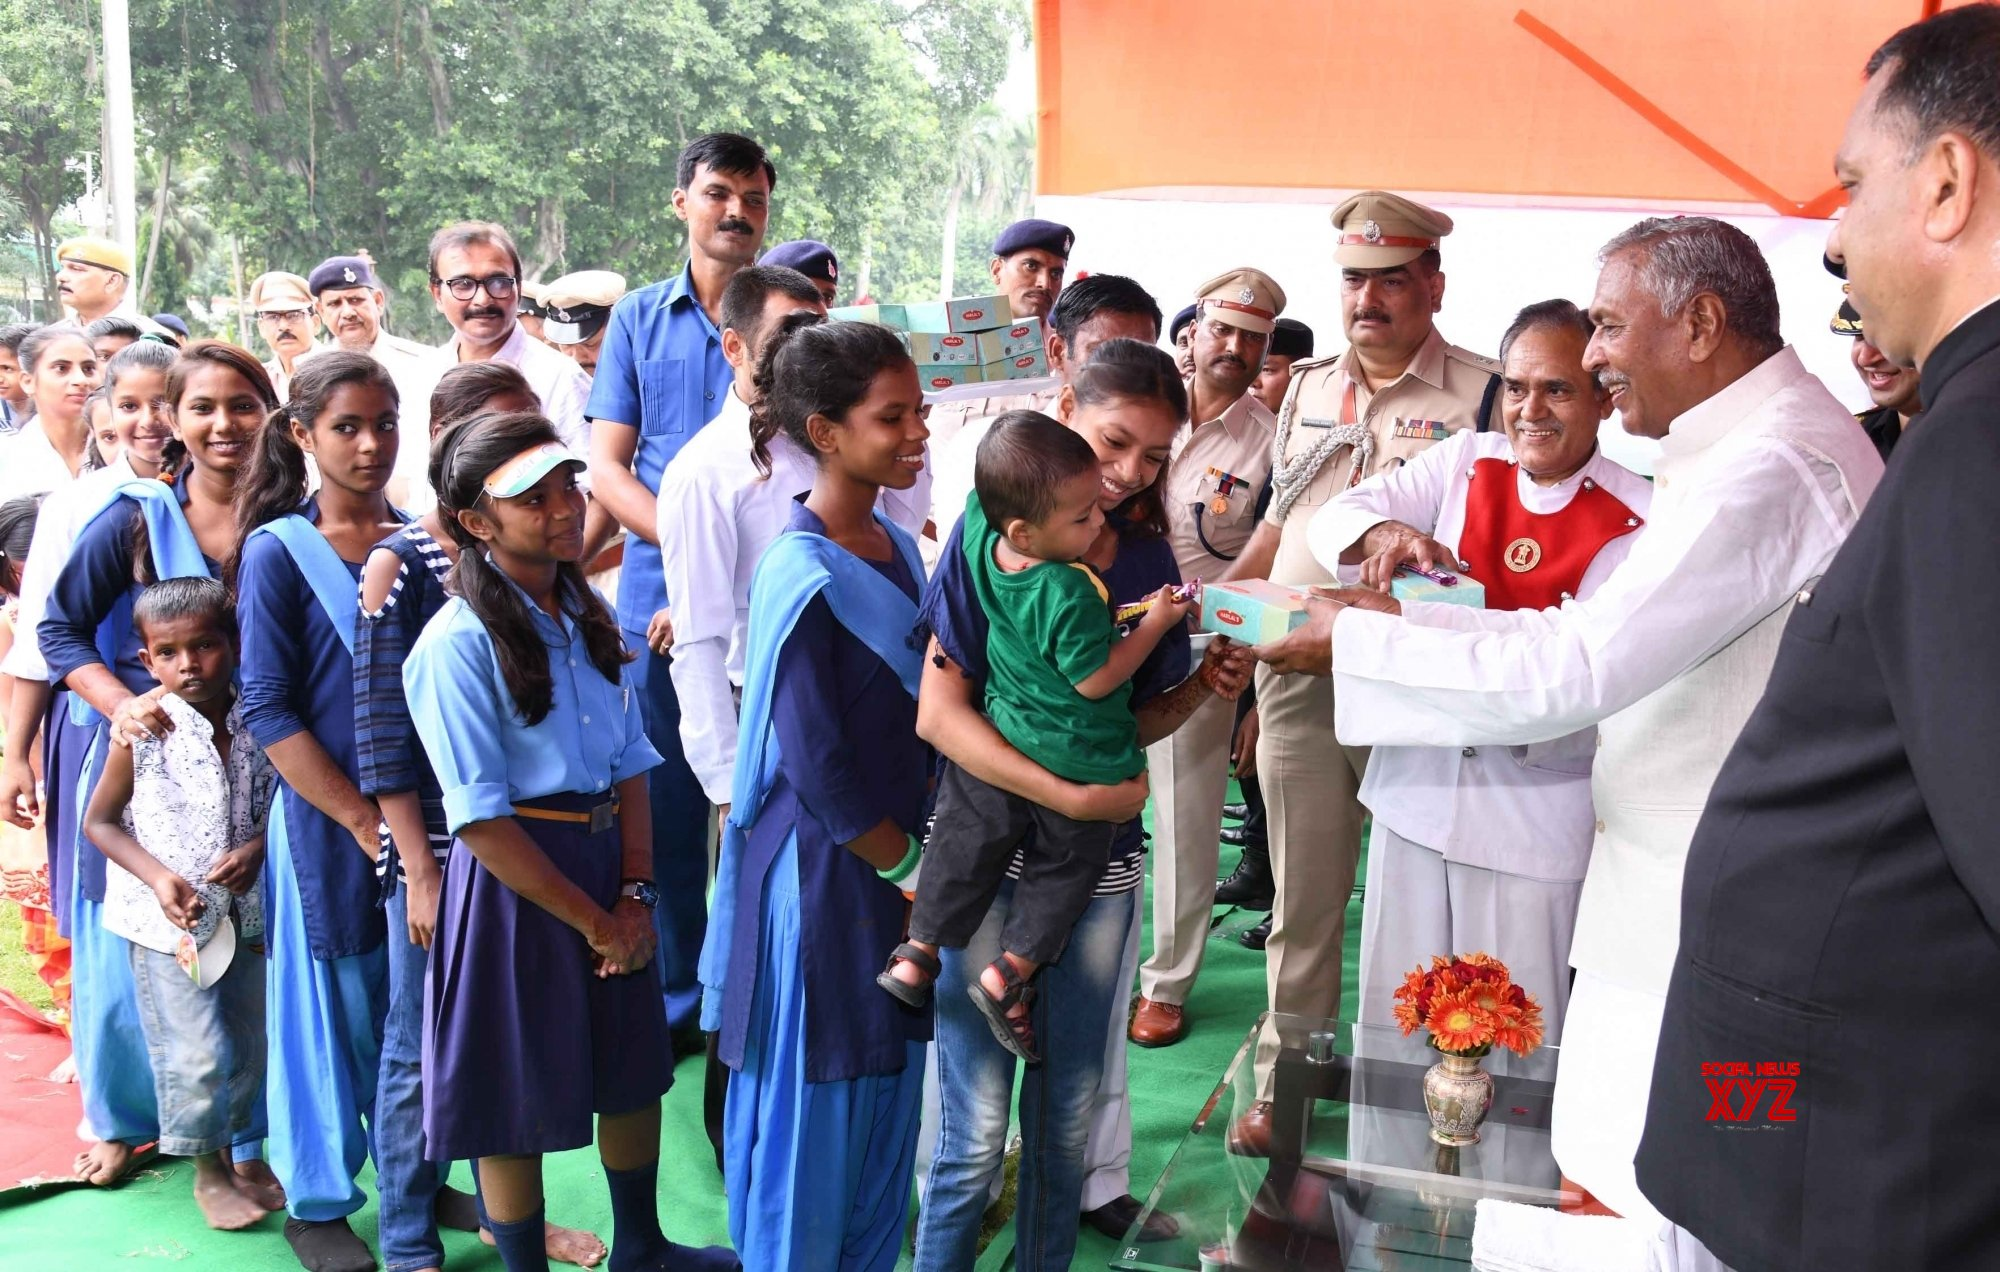 Patna: Bihar Governor during 73rd Independence Day celebrations #Gallery